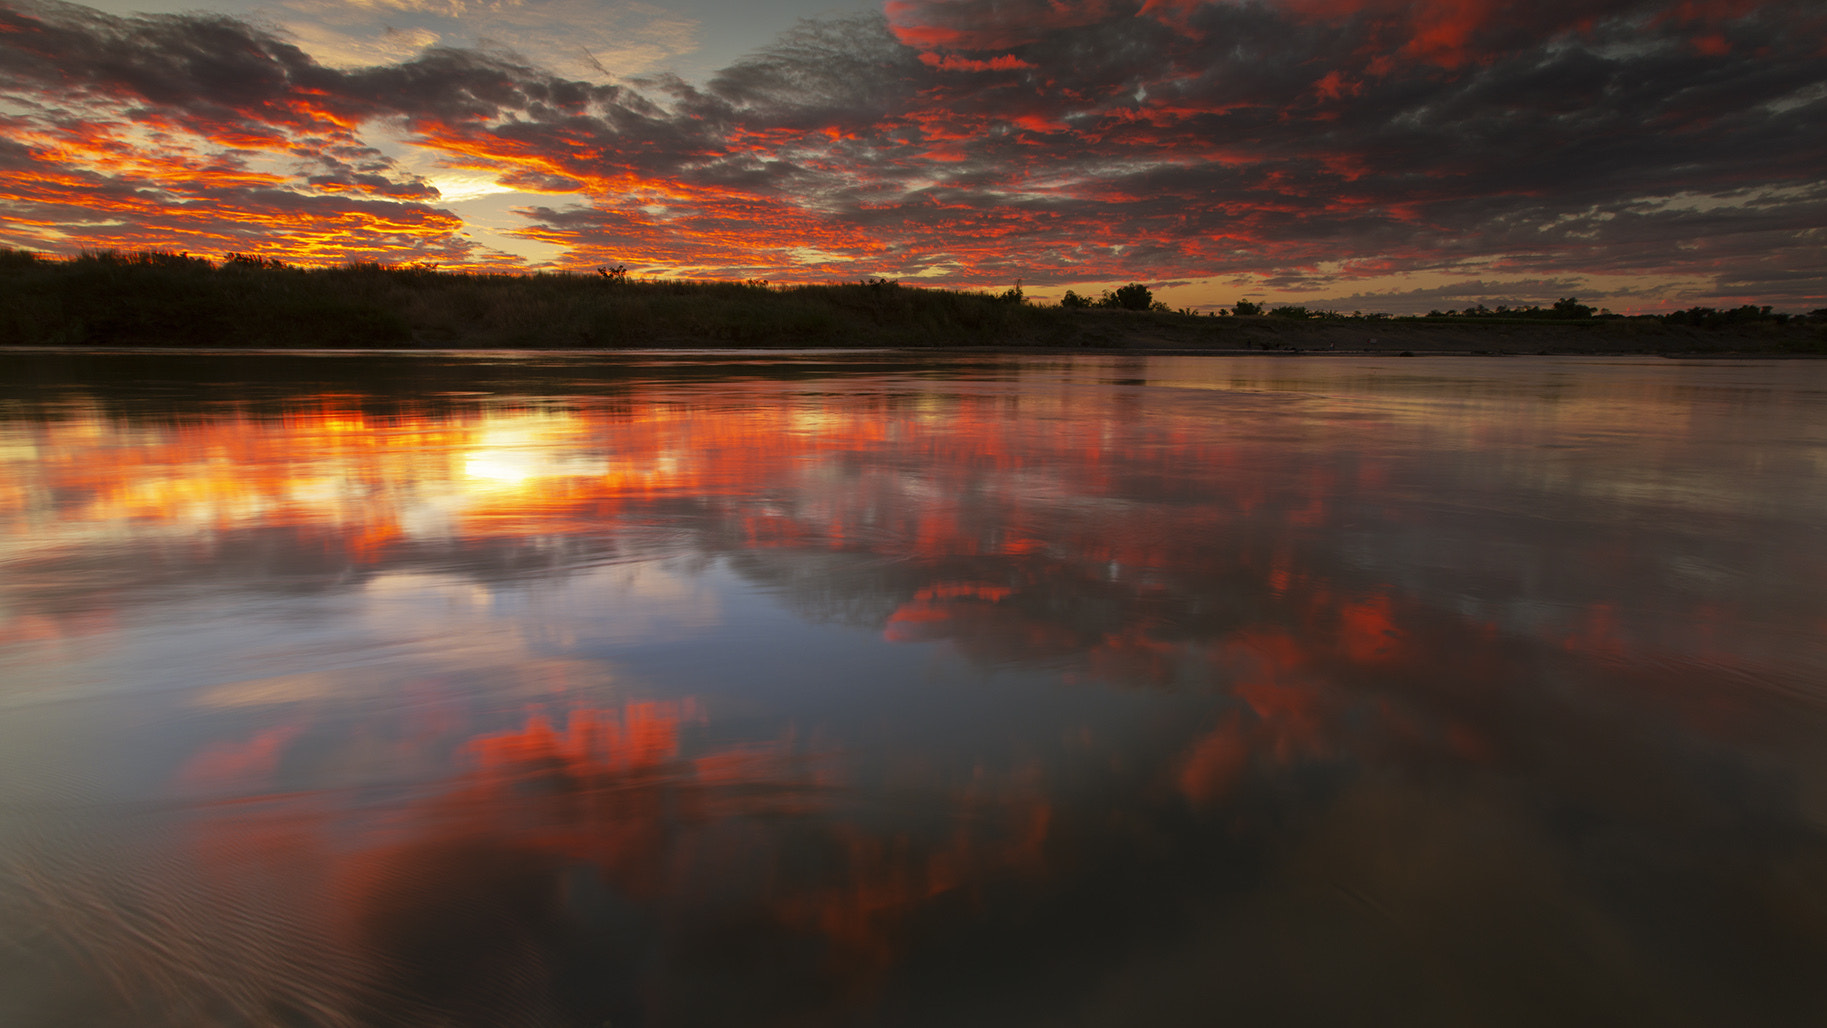 Photograph Reflections by carlos david on 500px